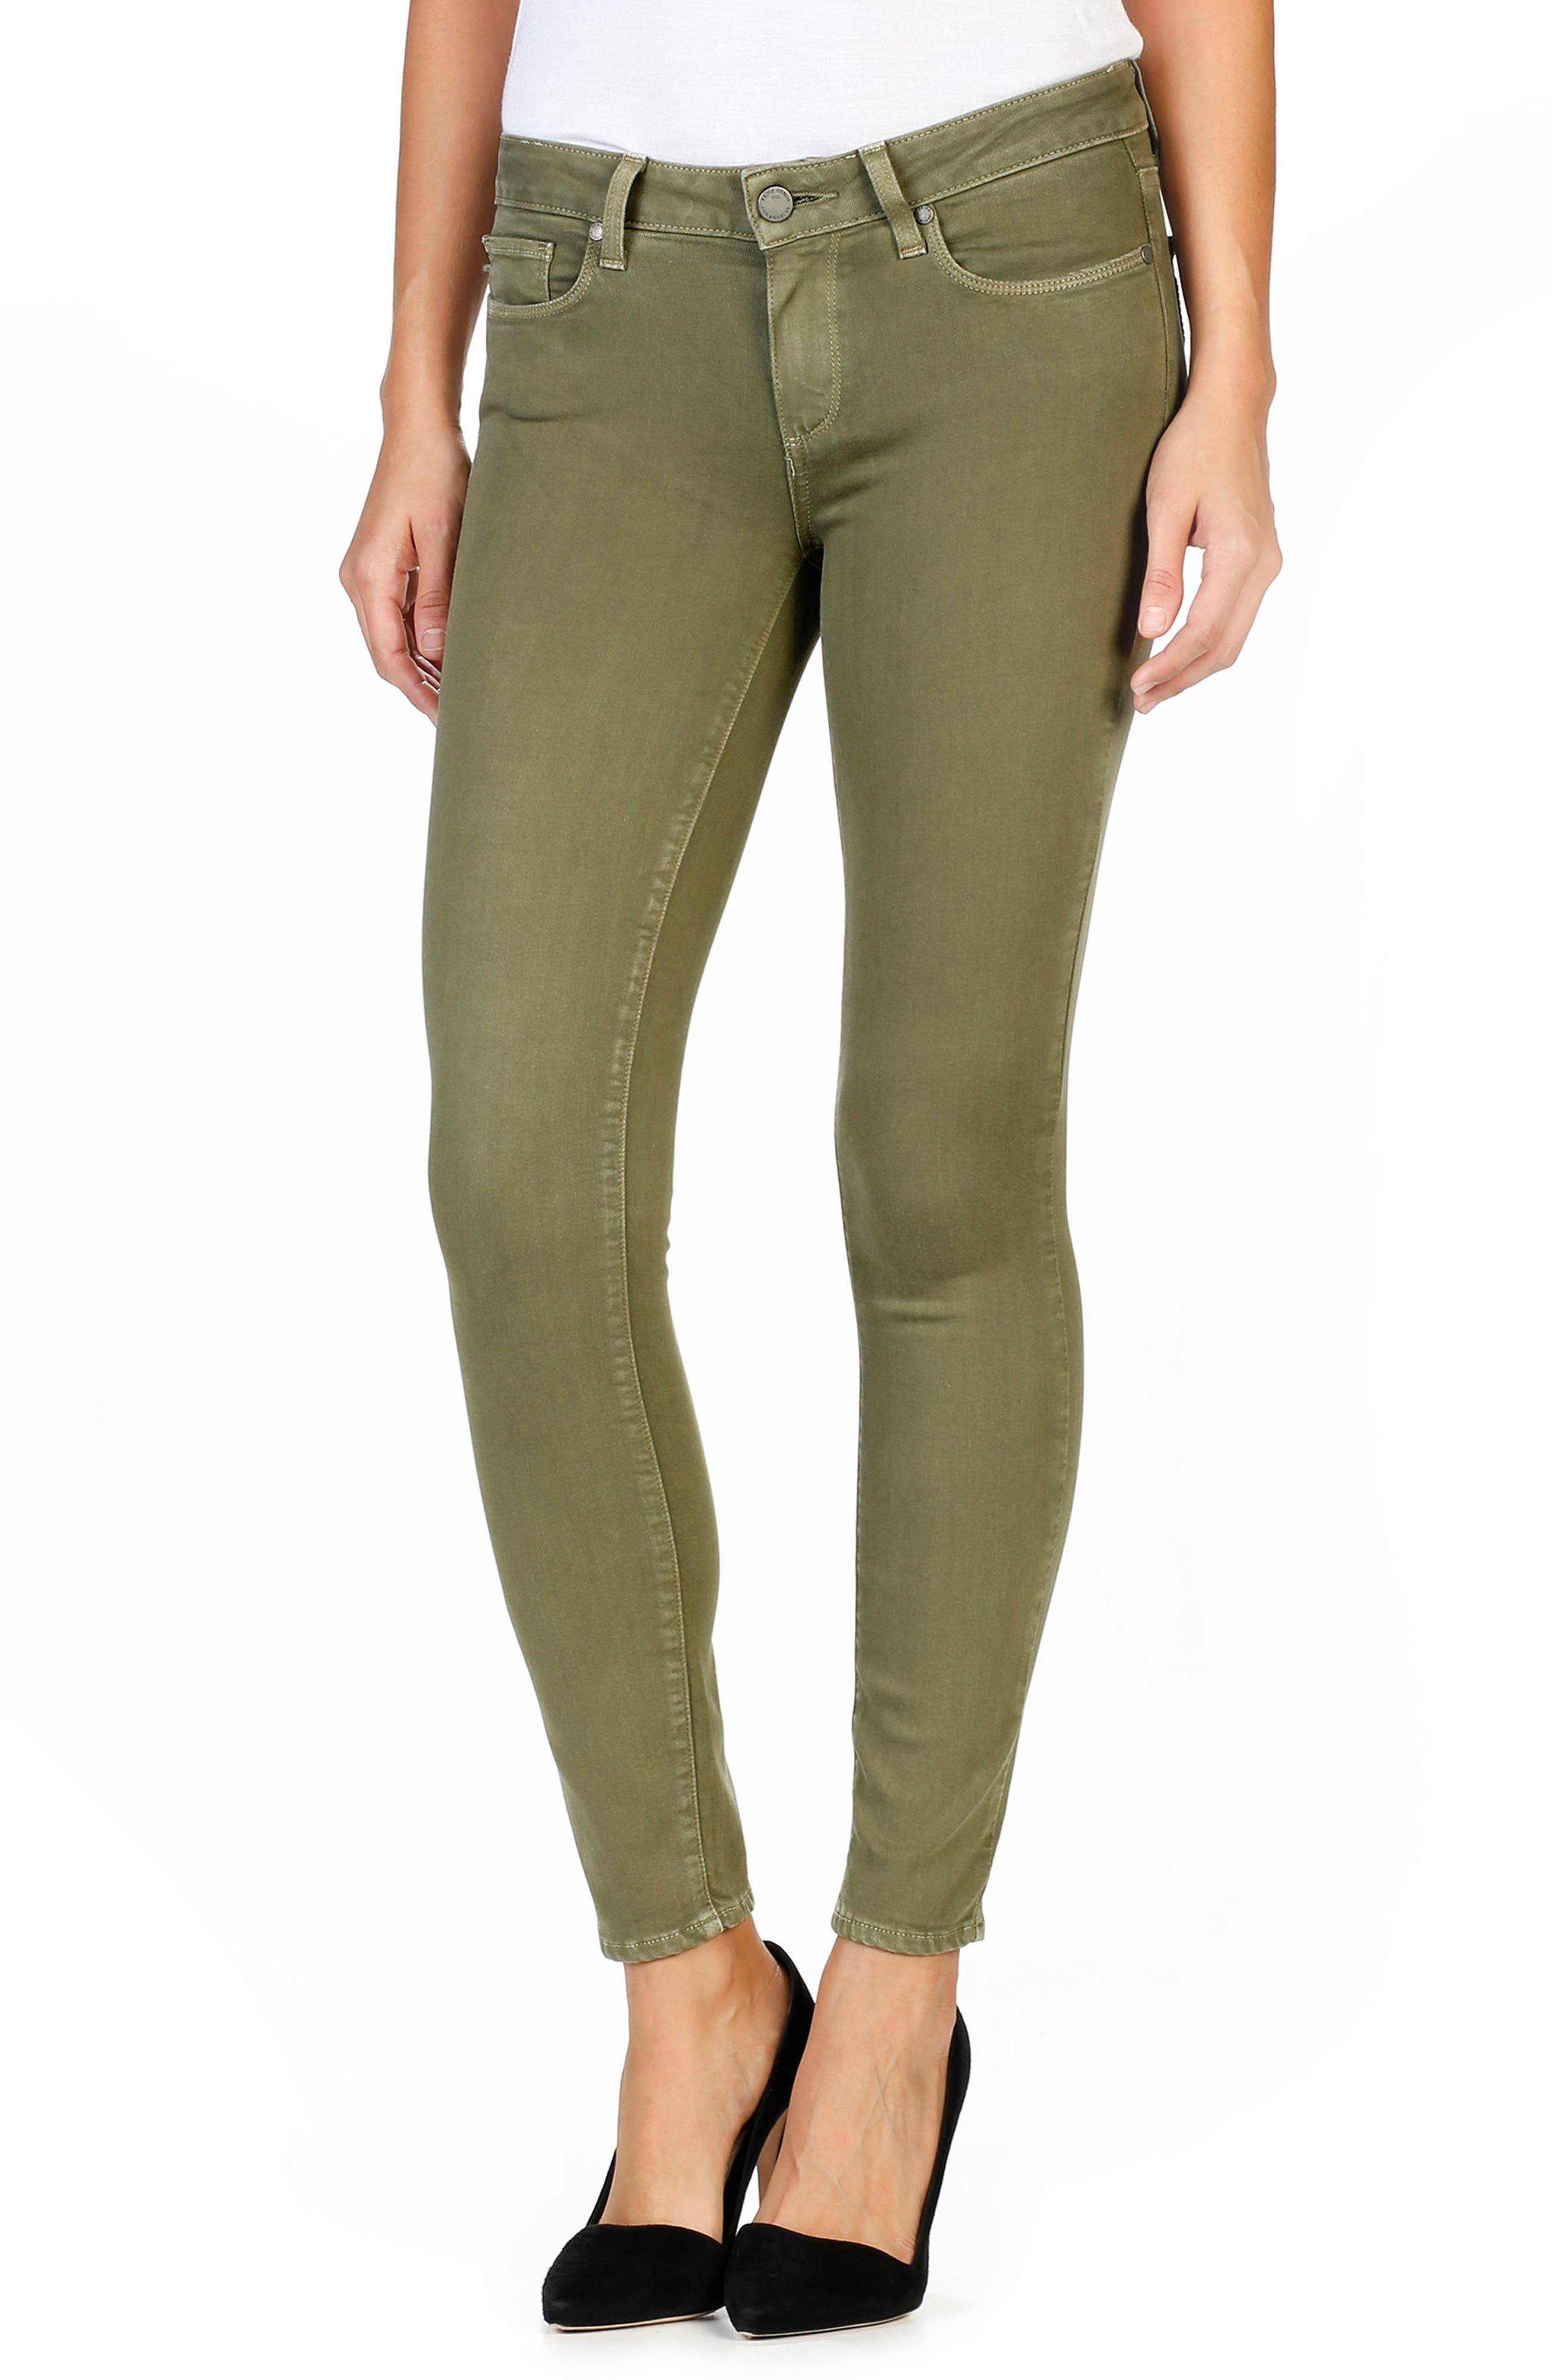 PAIGE Transcend - Verdugo Ankle Skinny Jeans (Sahara Green)